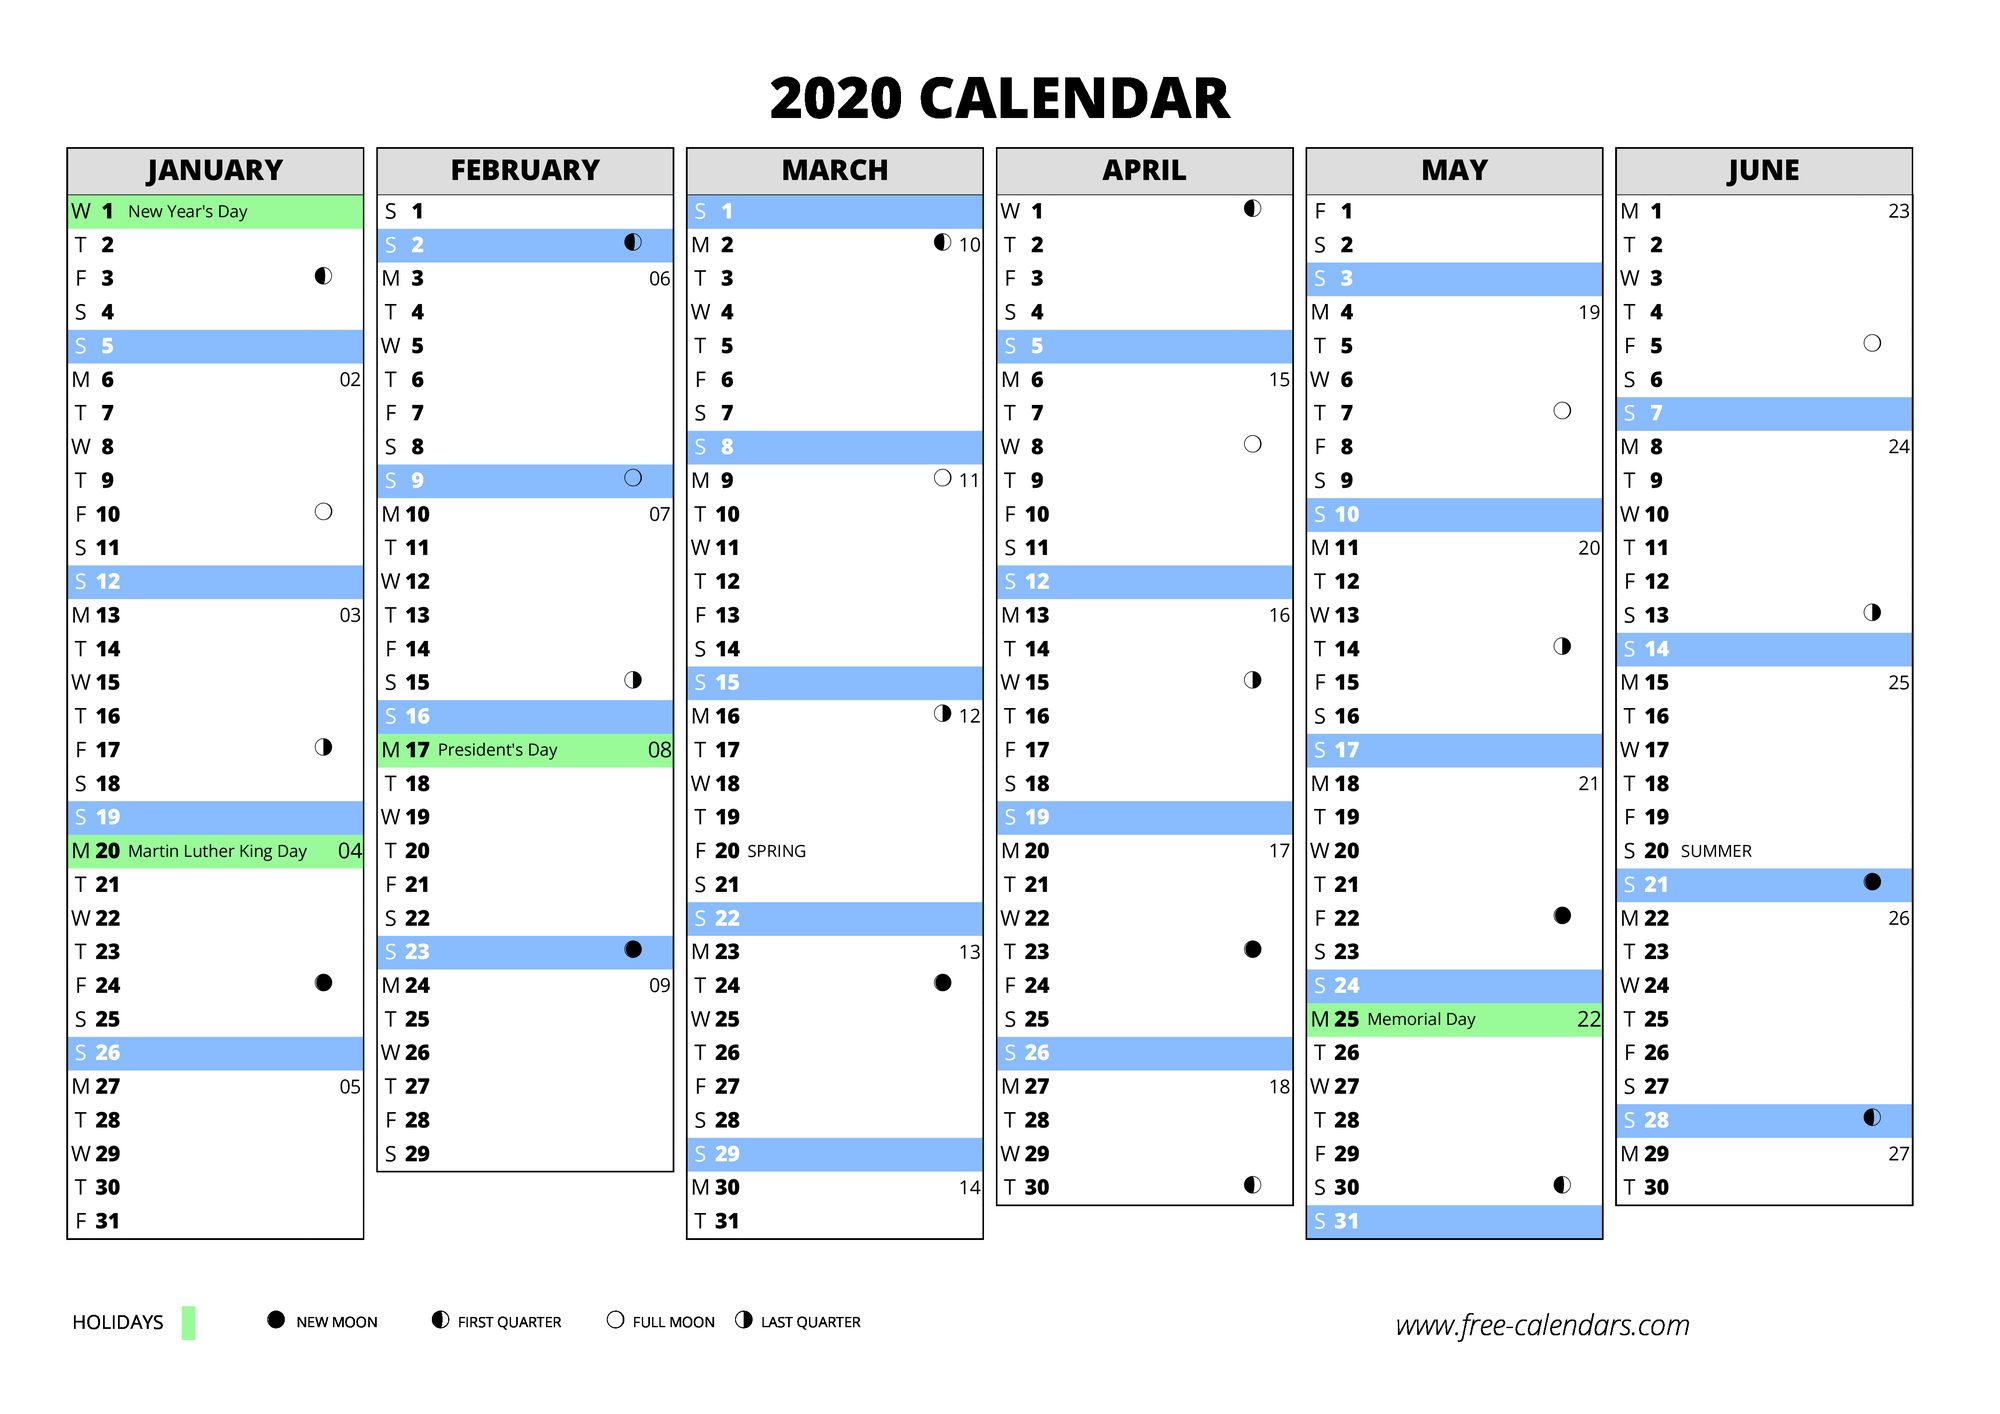 2020 Calendar ≡ Free-Calendars in 2020 Calendar With Week Numbers In Excel